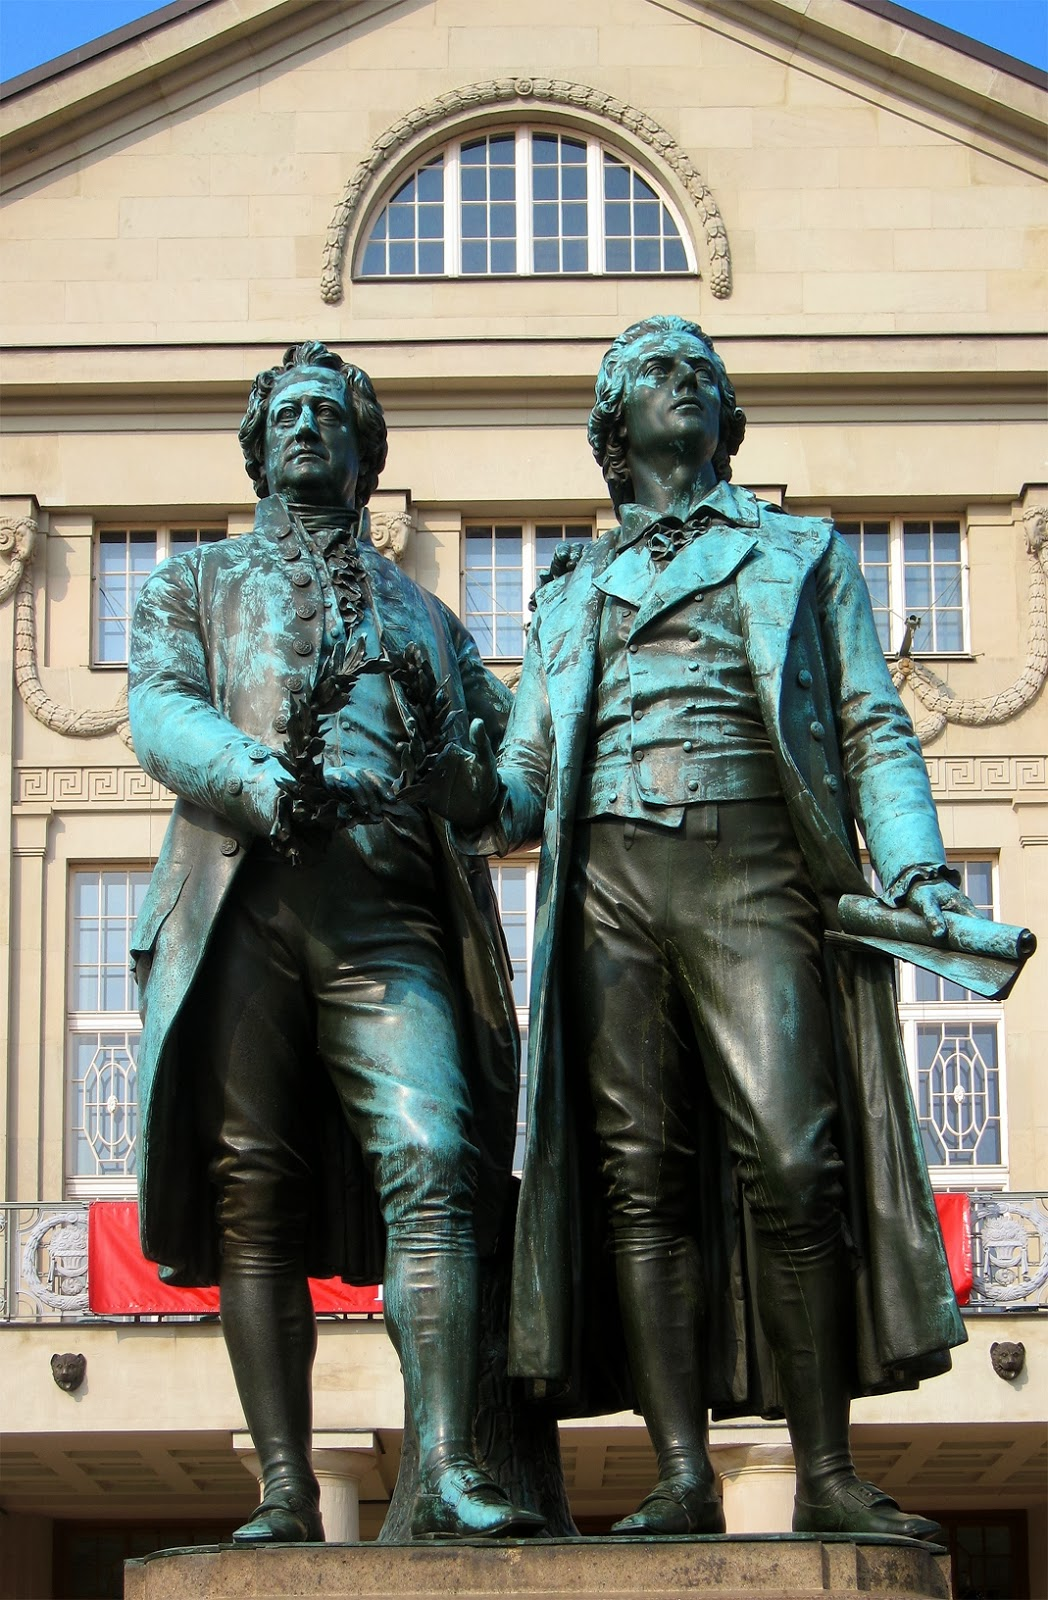 The Goethe and Schiller statue in Weimar